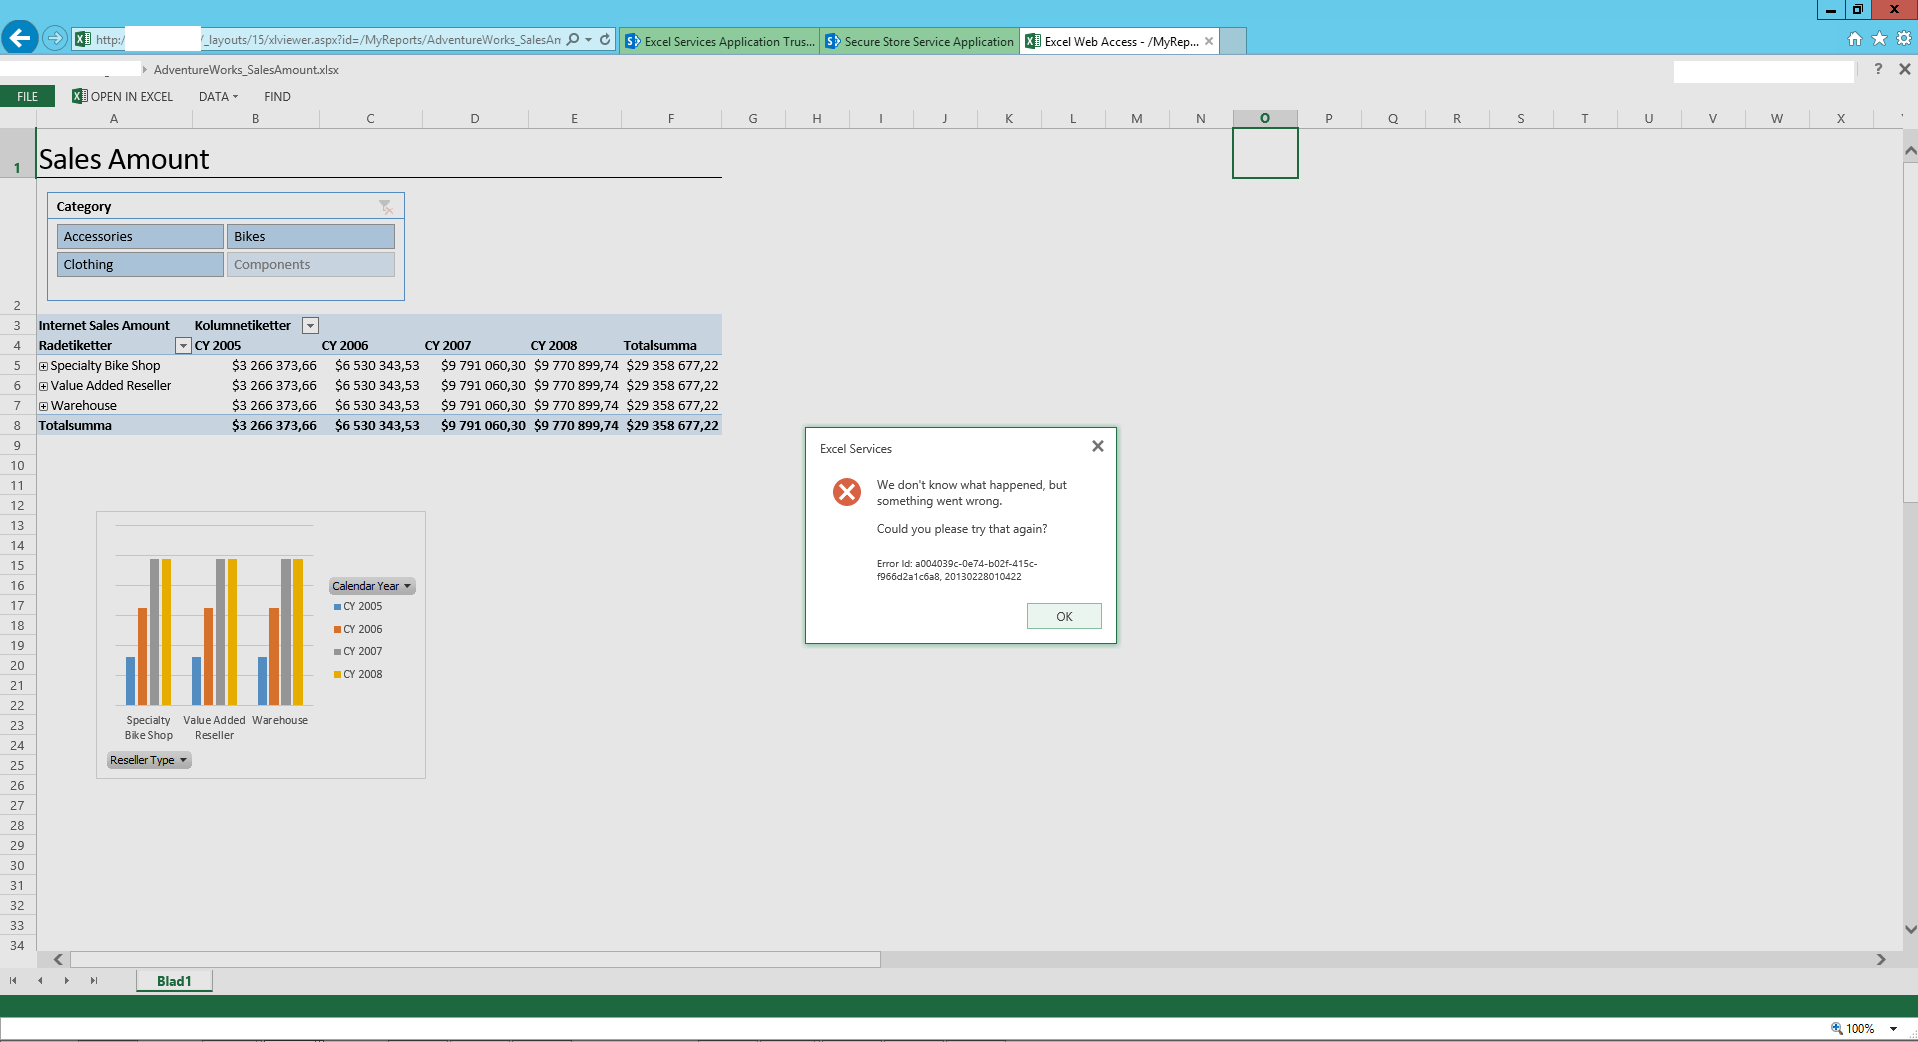 Sharepoint Excel Services Error When Changing Locale